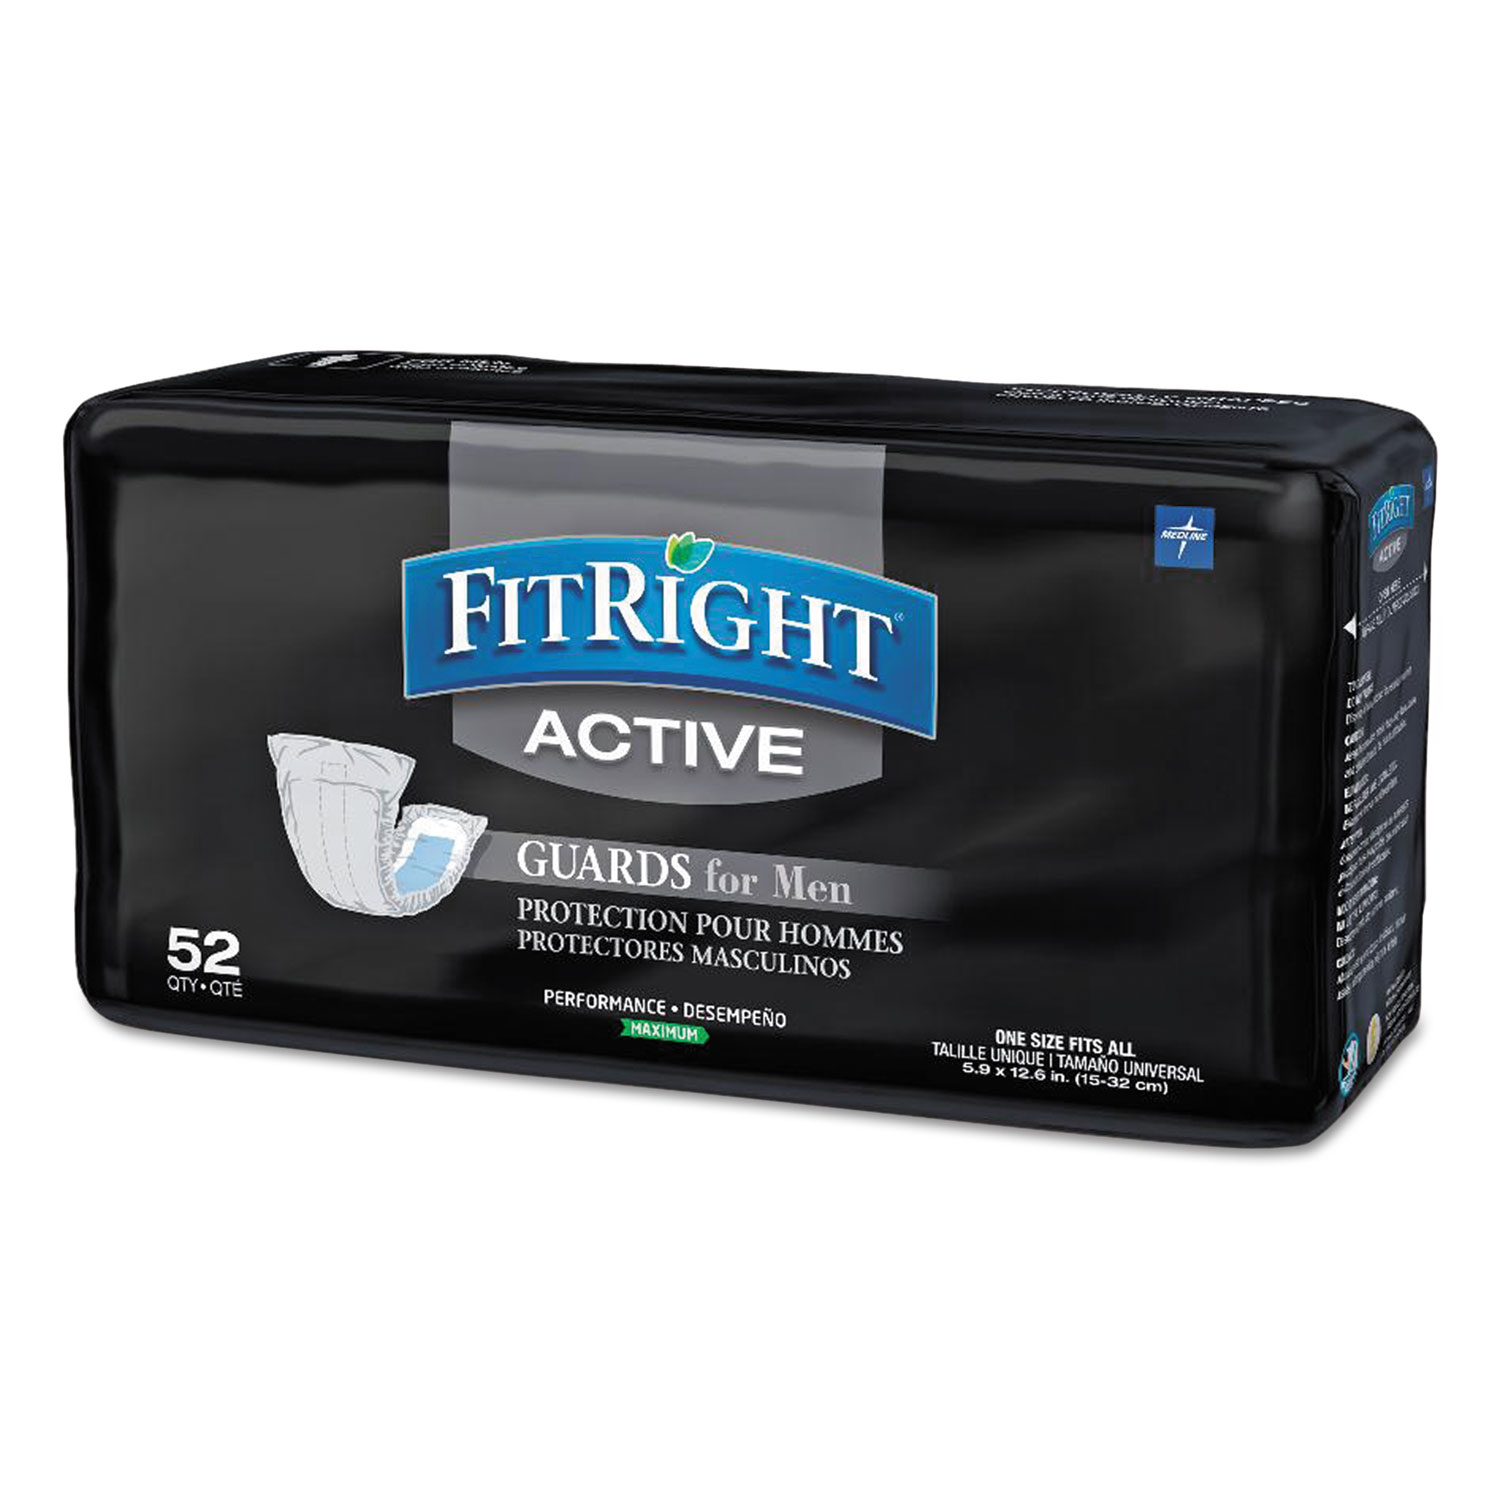 "FitRight Active Male Guards, 6"" x 11"", White, 52/Pack, 4 Pack/Carton"